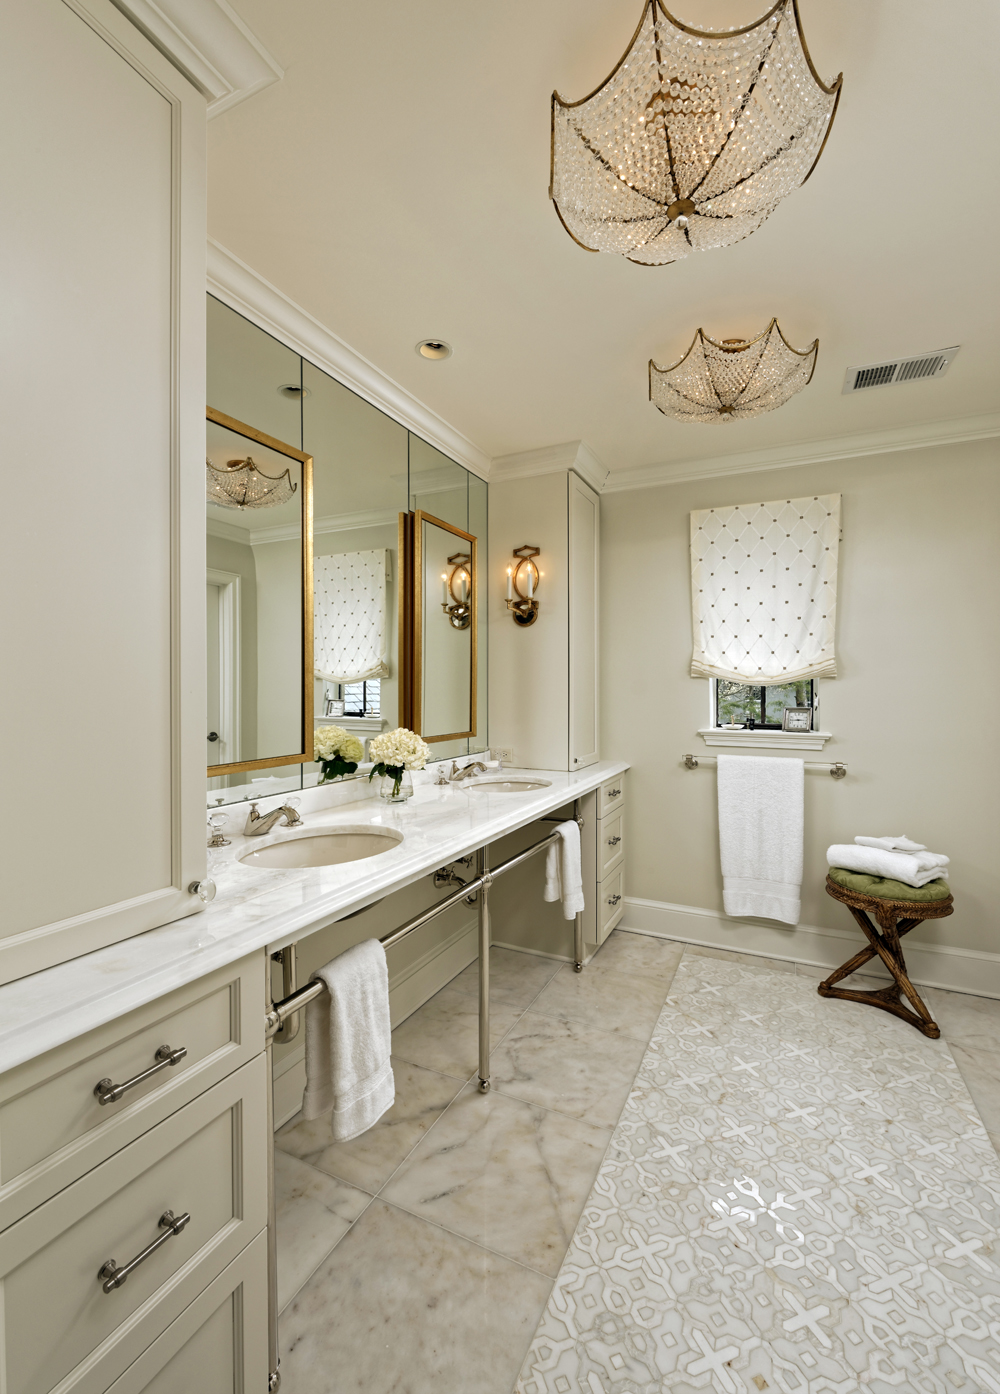 Please Sit Back Relax And Enjoy Perusing This Gallery Of Our Recent Master Bath Bathroom Projects We D Love To Hear From You If Something Piques Your